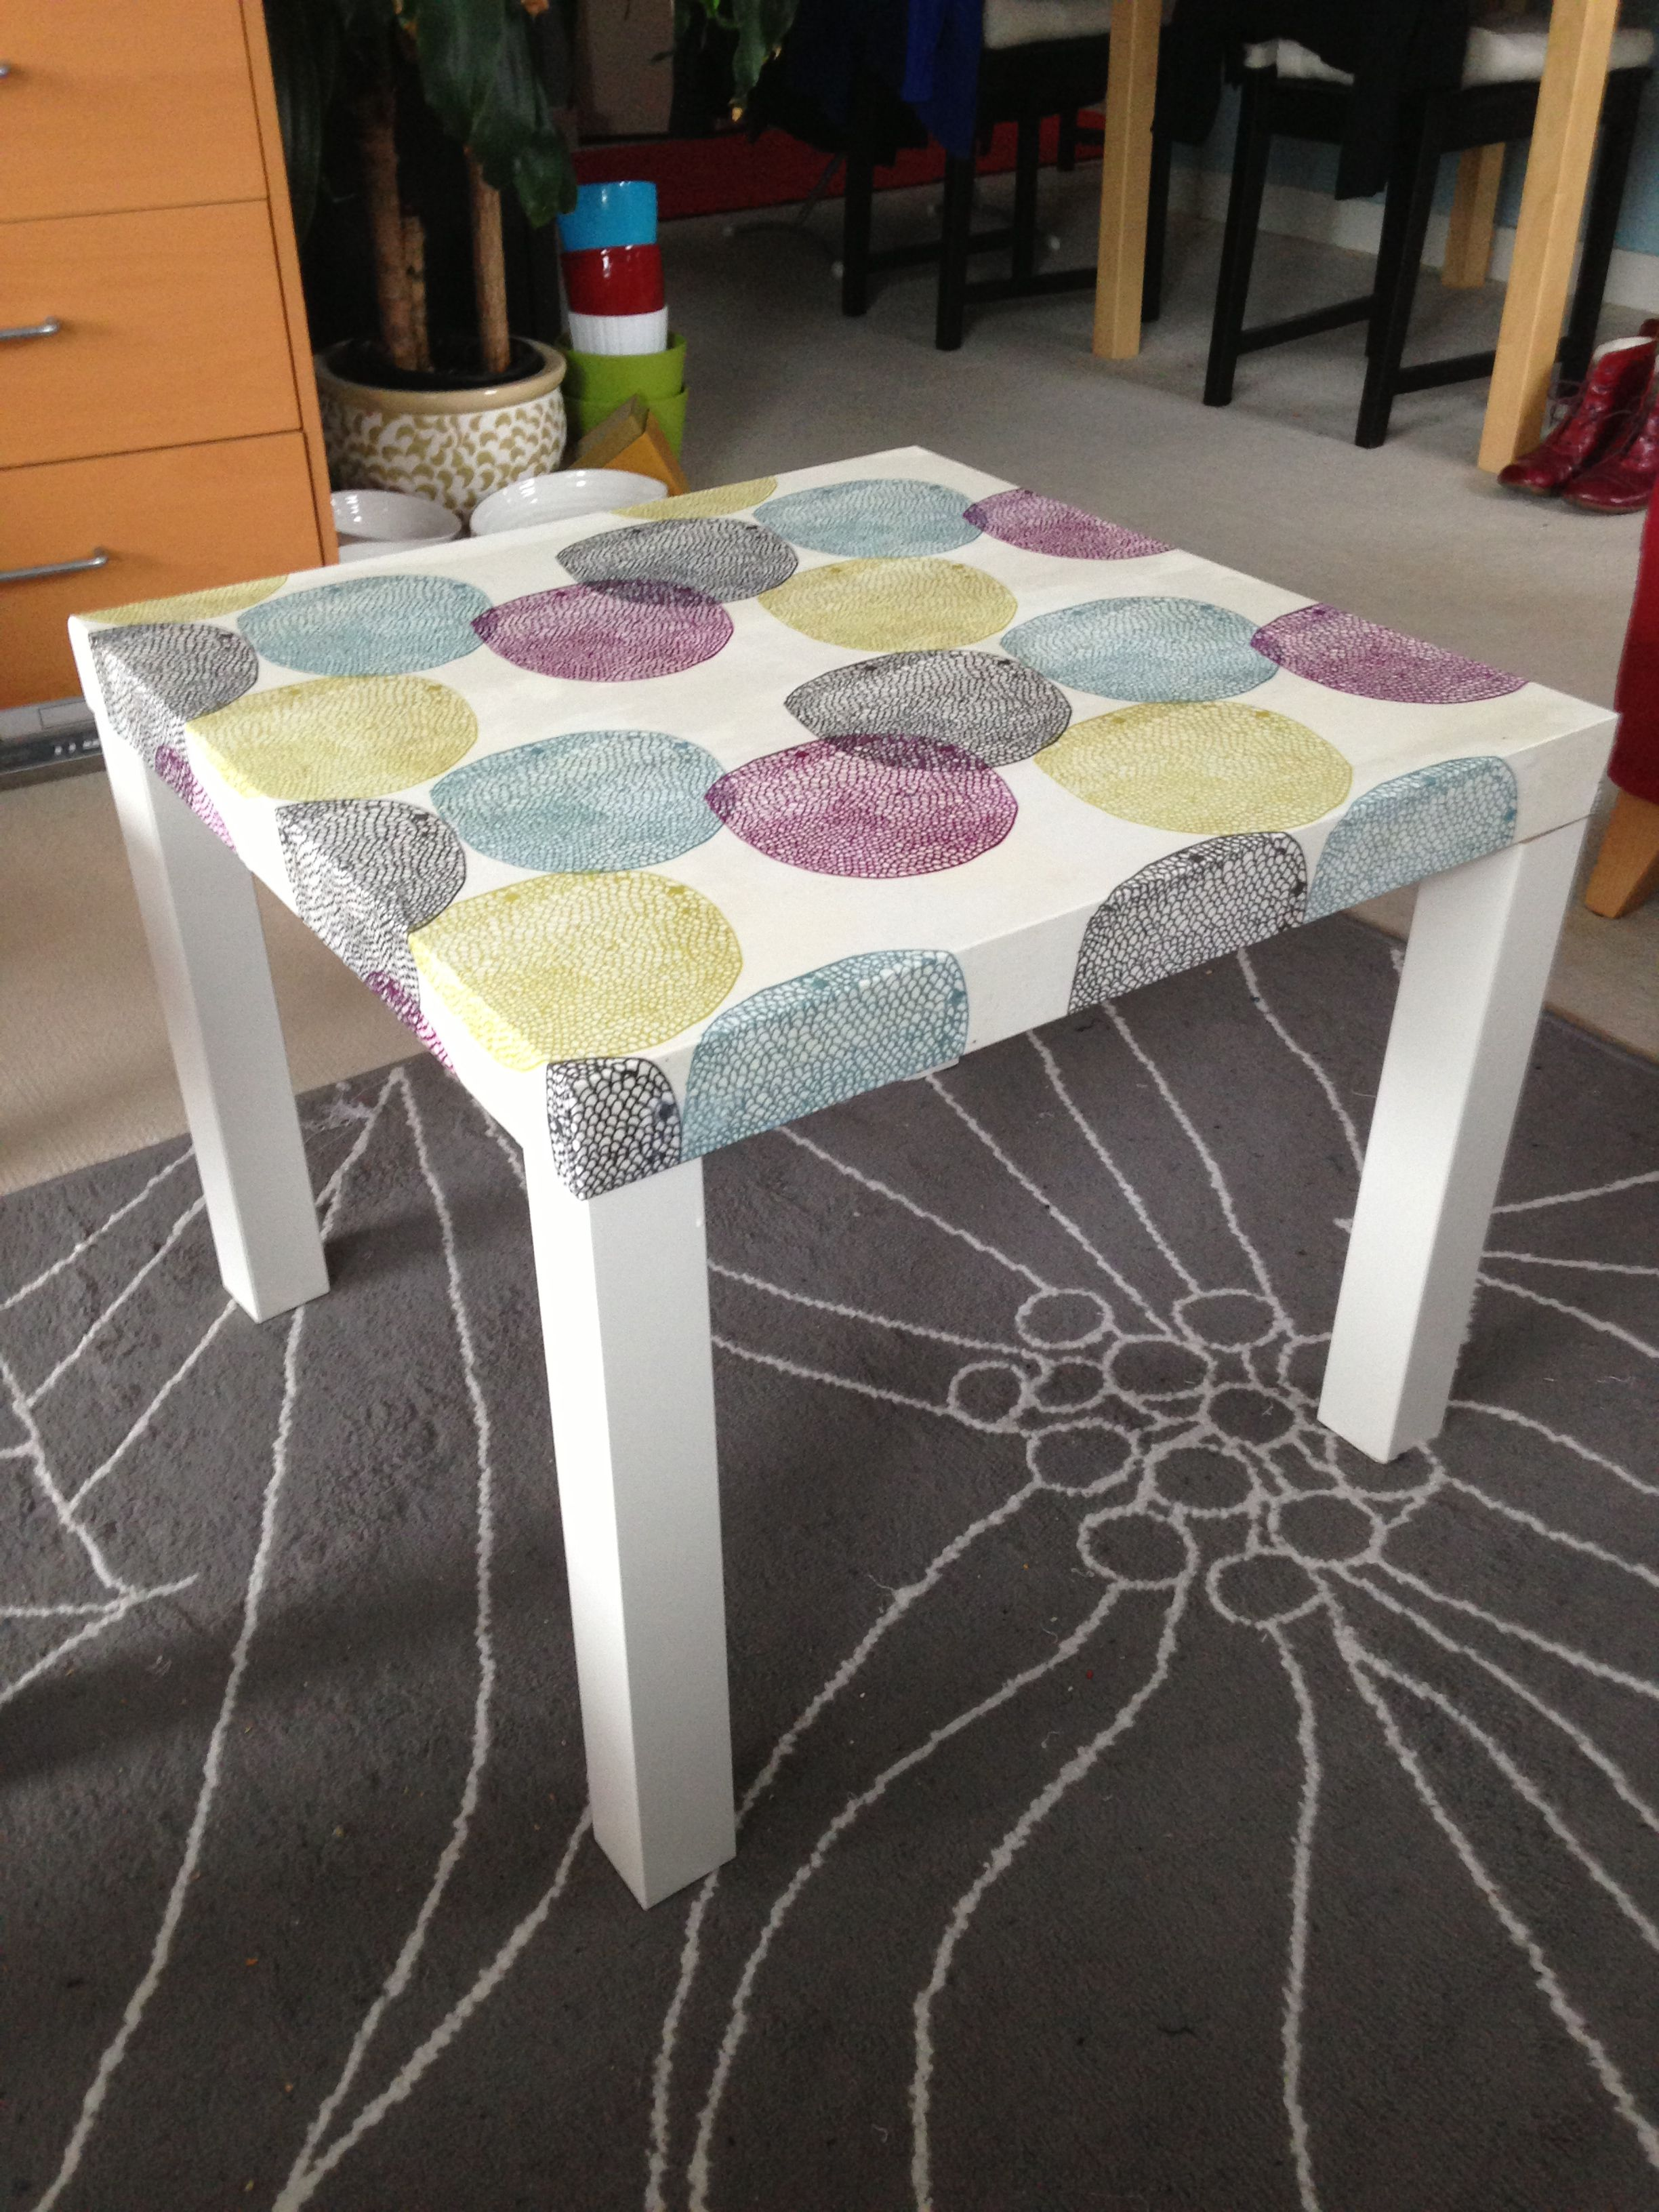 ikea lack table hack used a duvet cover and attached it to the